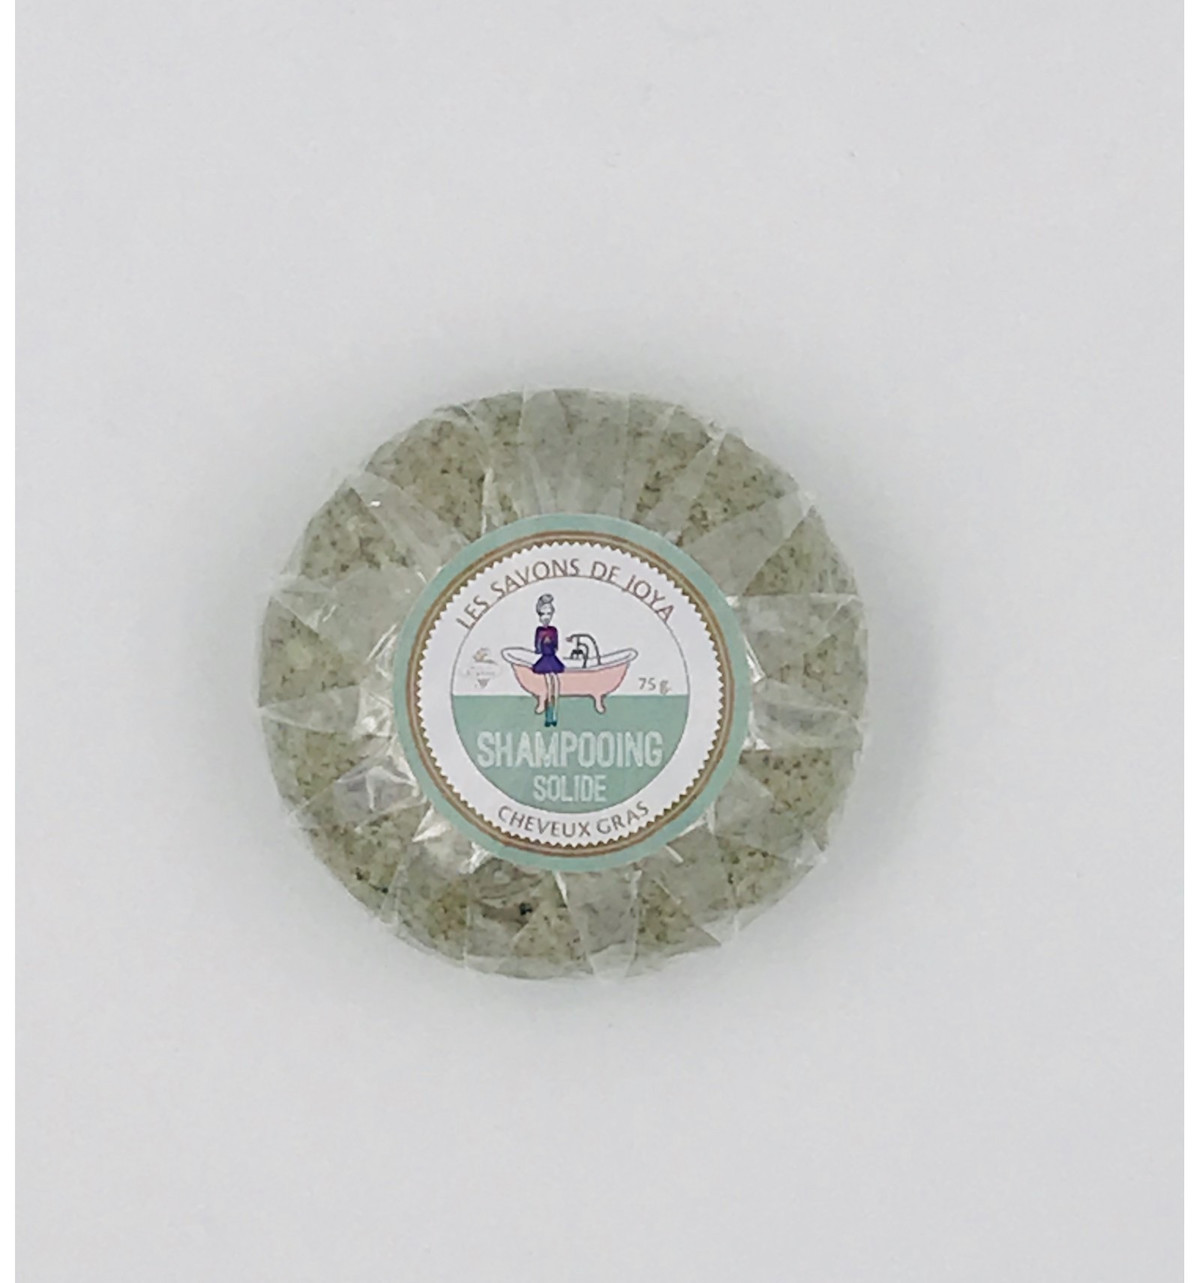 Shampoing solide pour cheveux gras 75 g